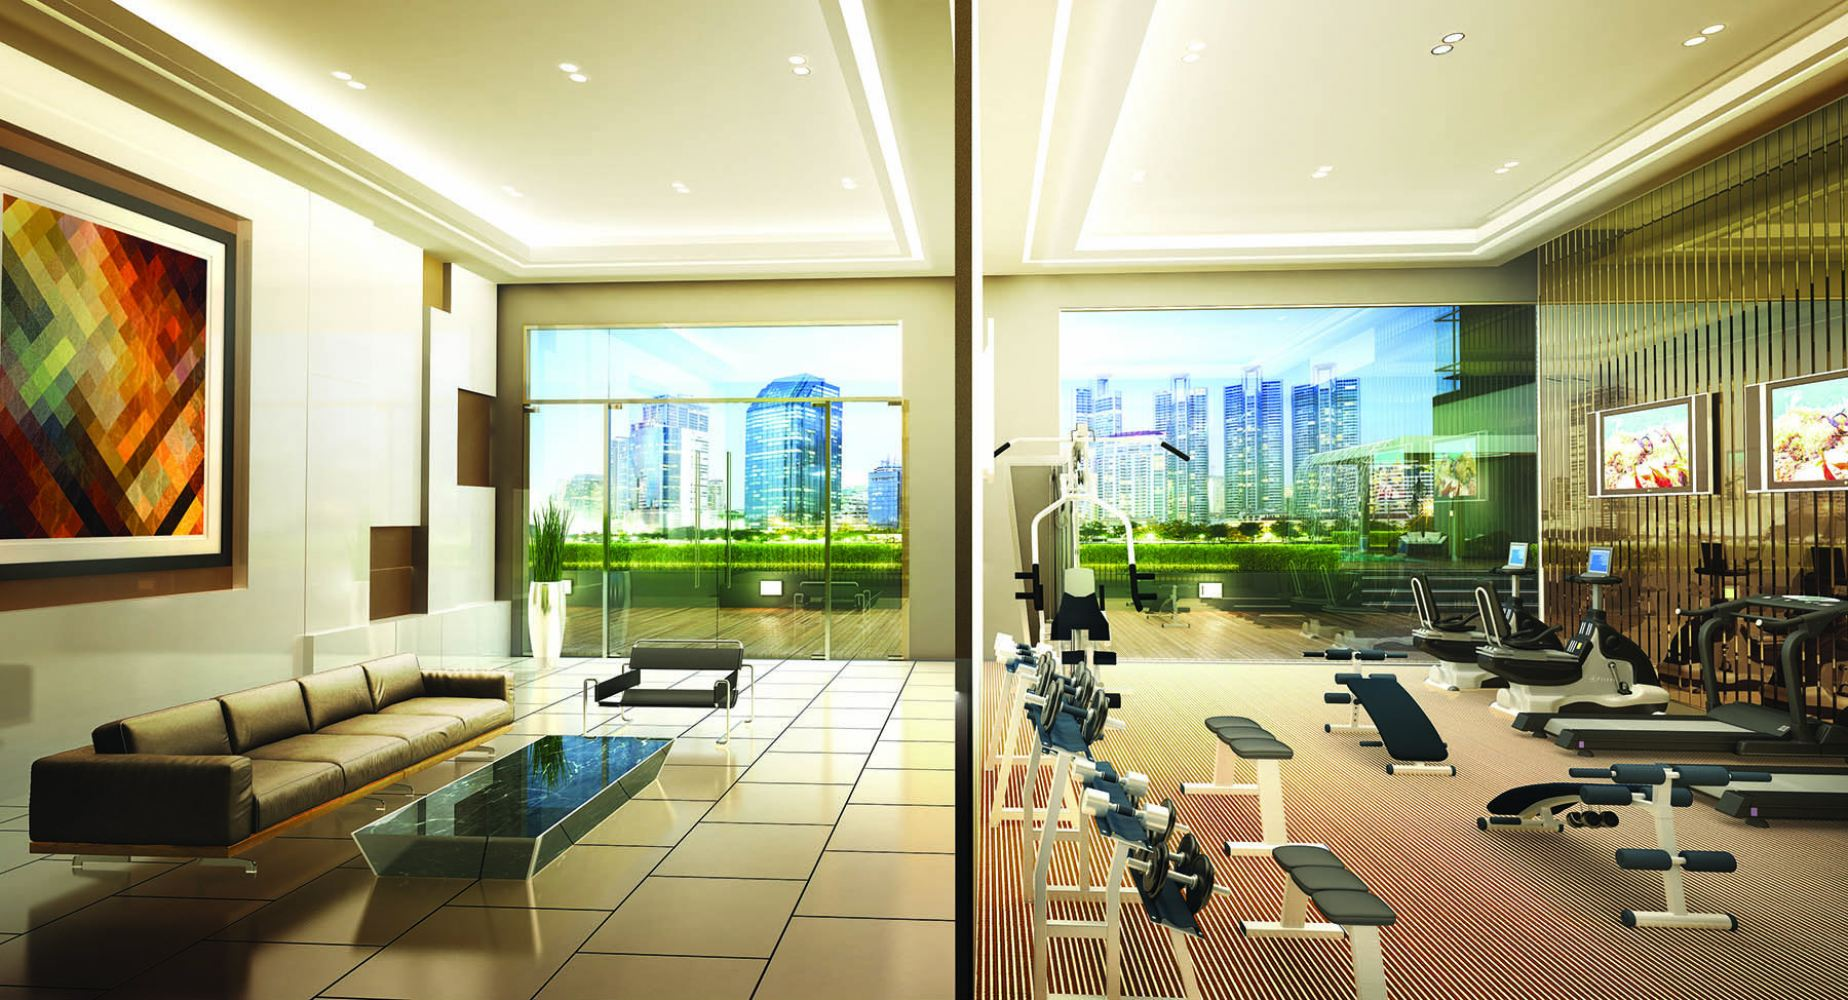 Shared Office Gym room and business lounge